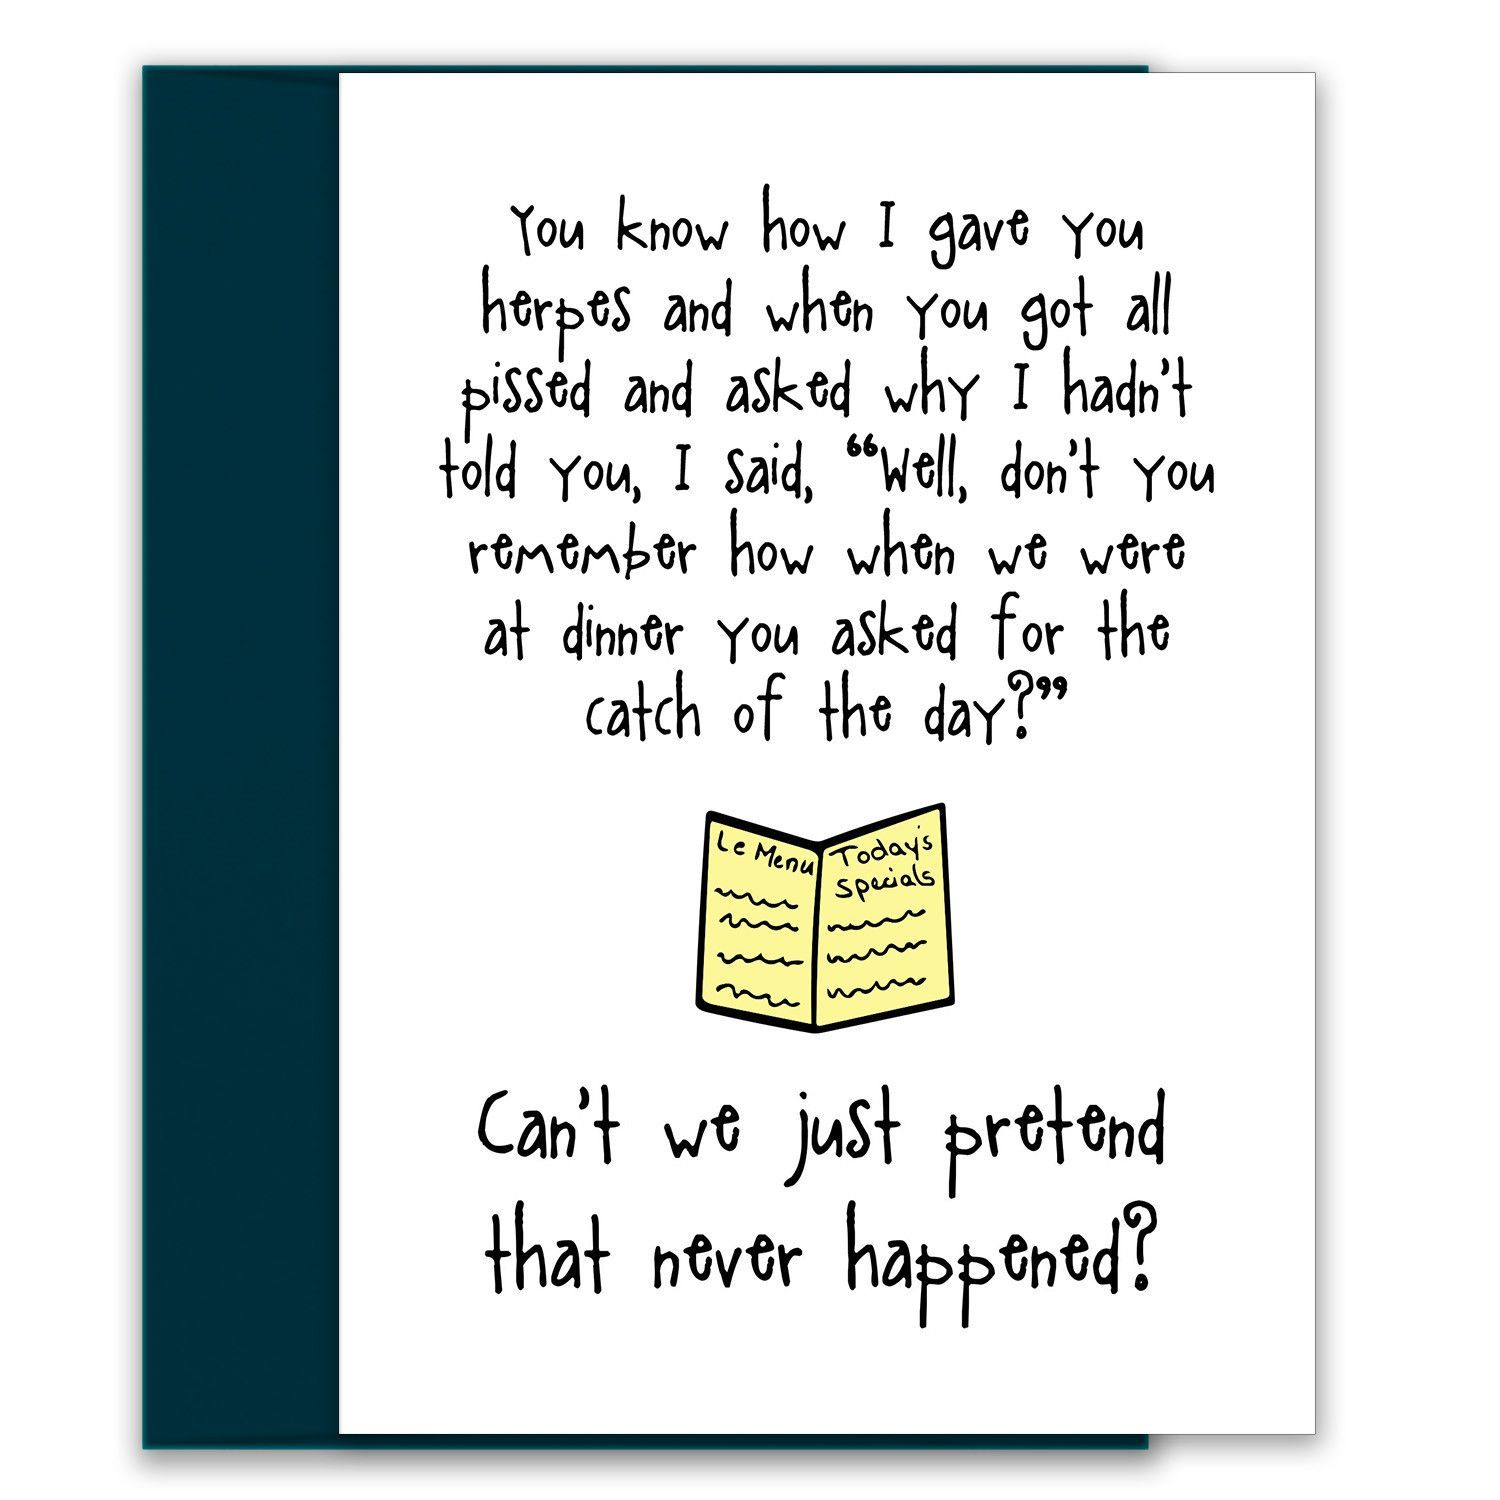 Funny adult greeting card catch of the day pinterest products funny adult greeting card catch of the day m4hsunfo